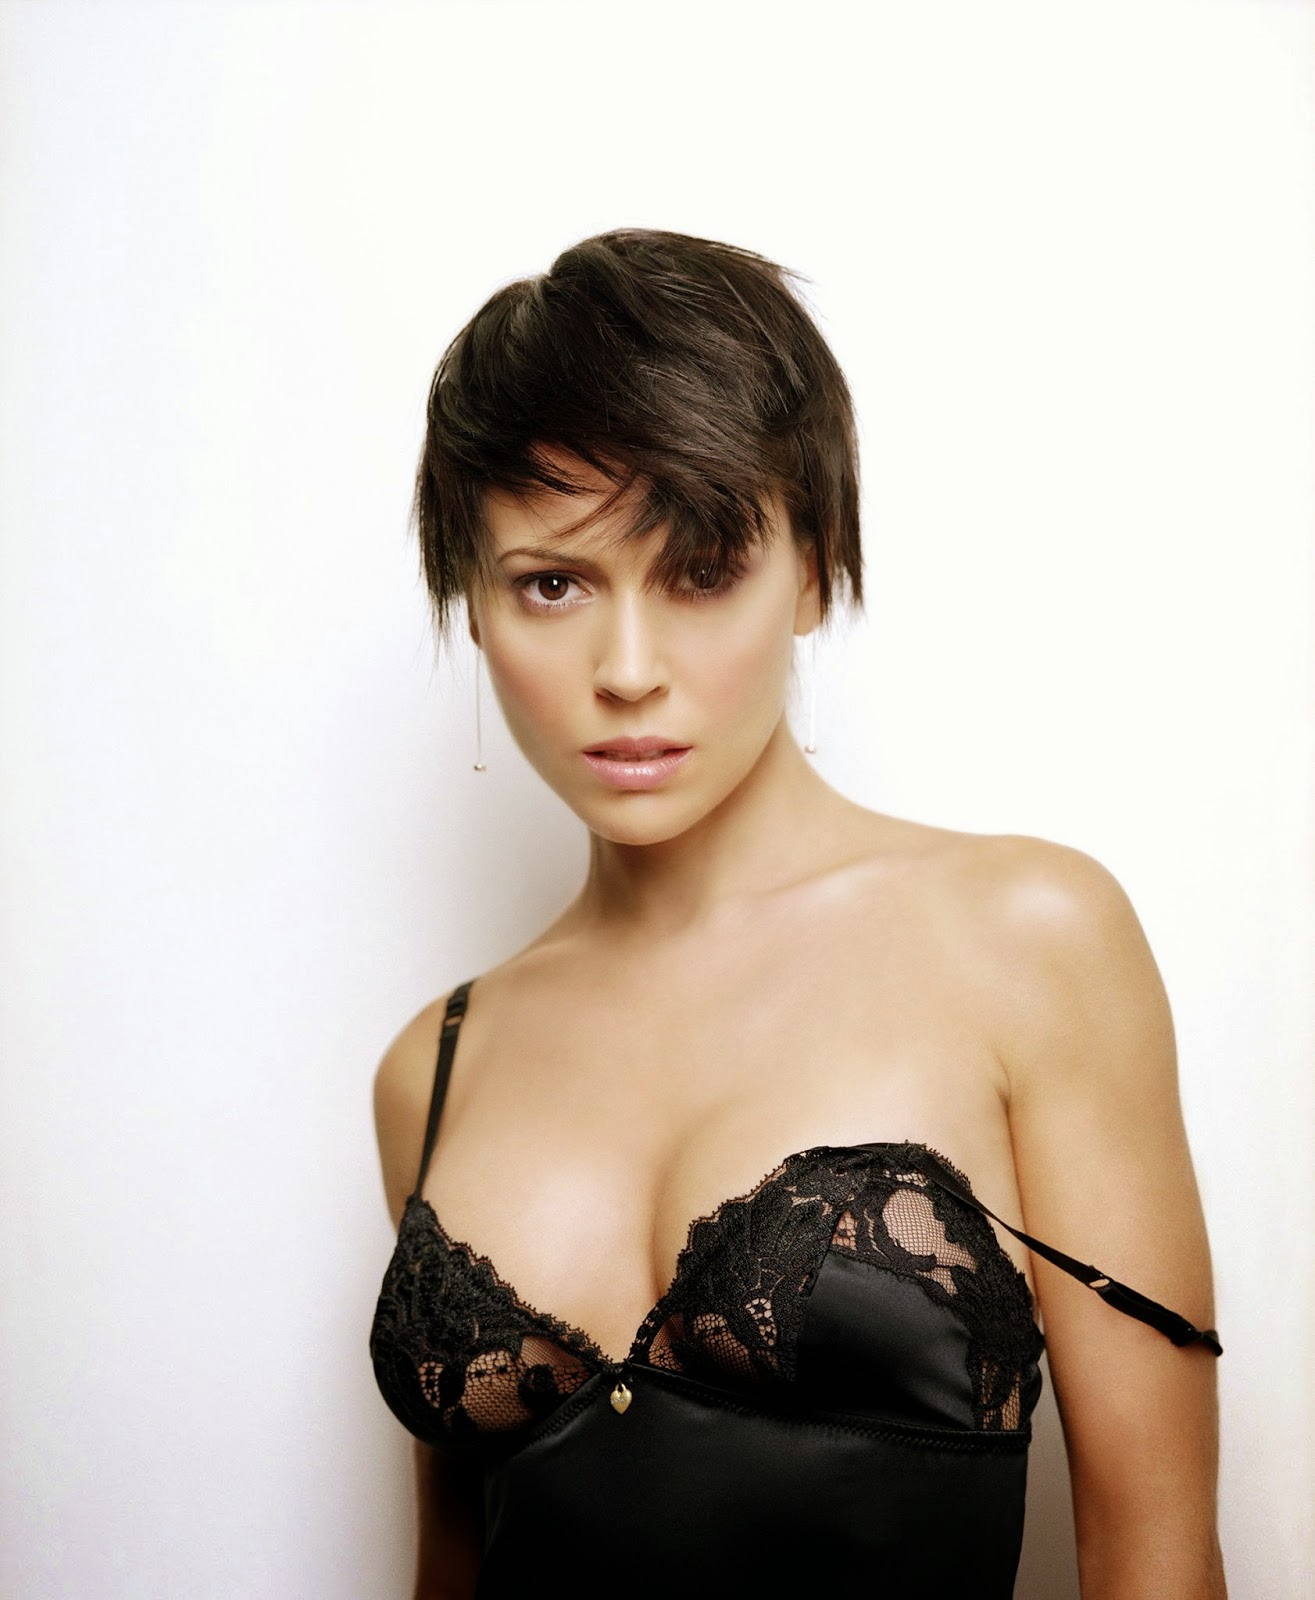 Photos de alyssa milano porno - Photos amateur de charme